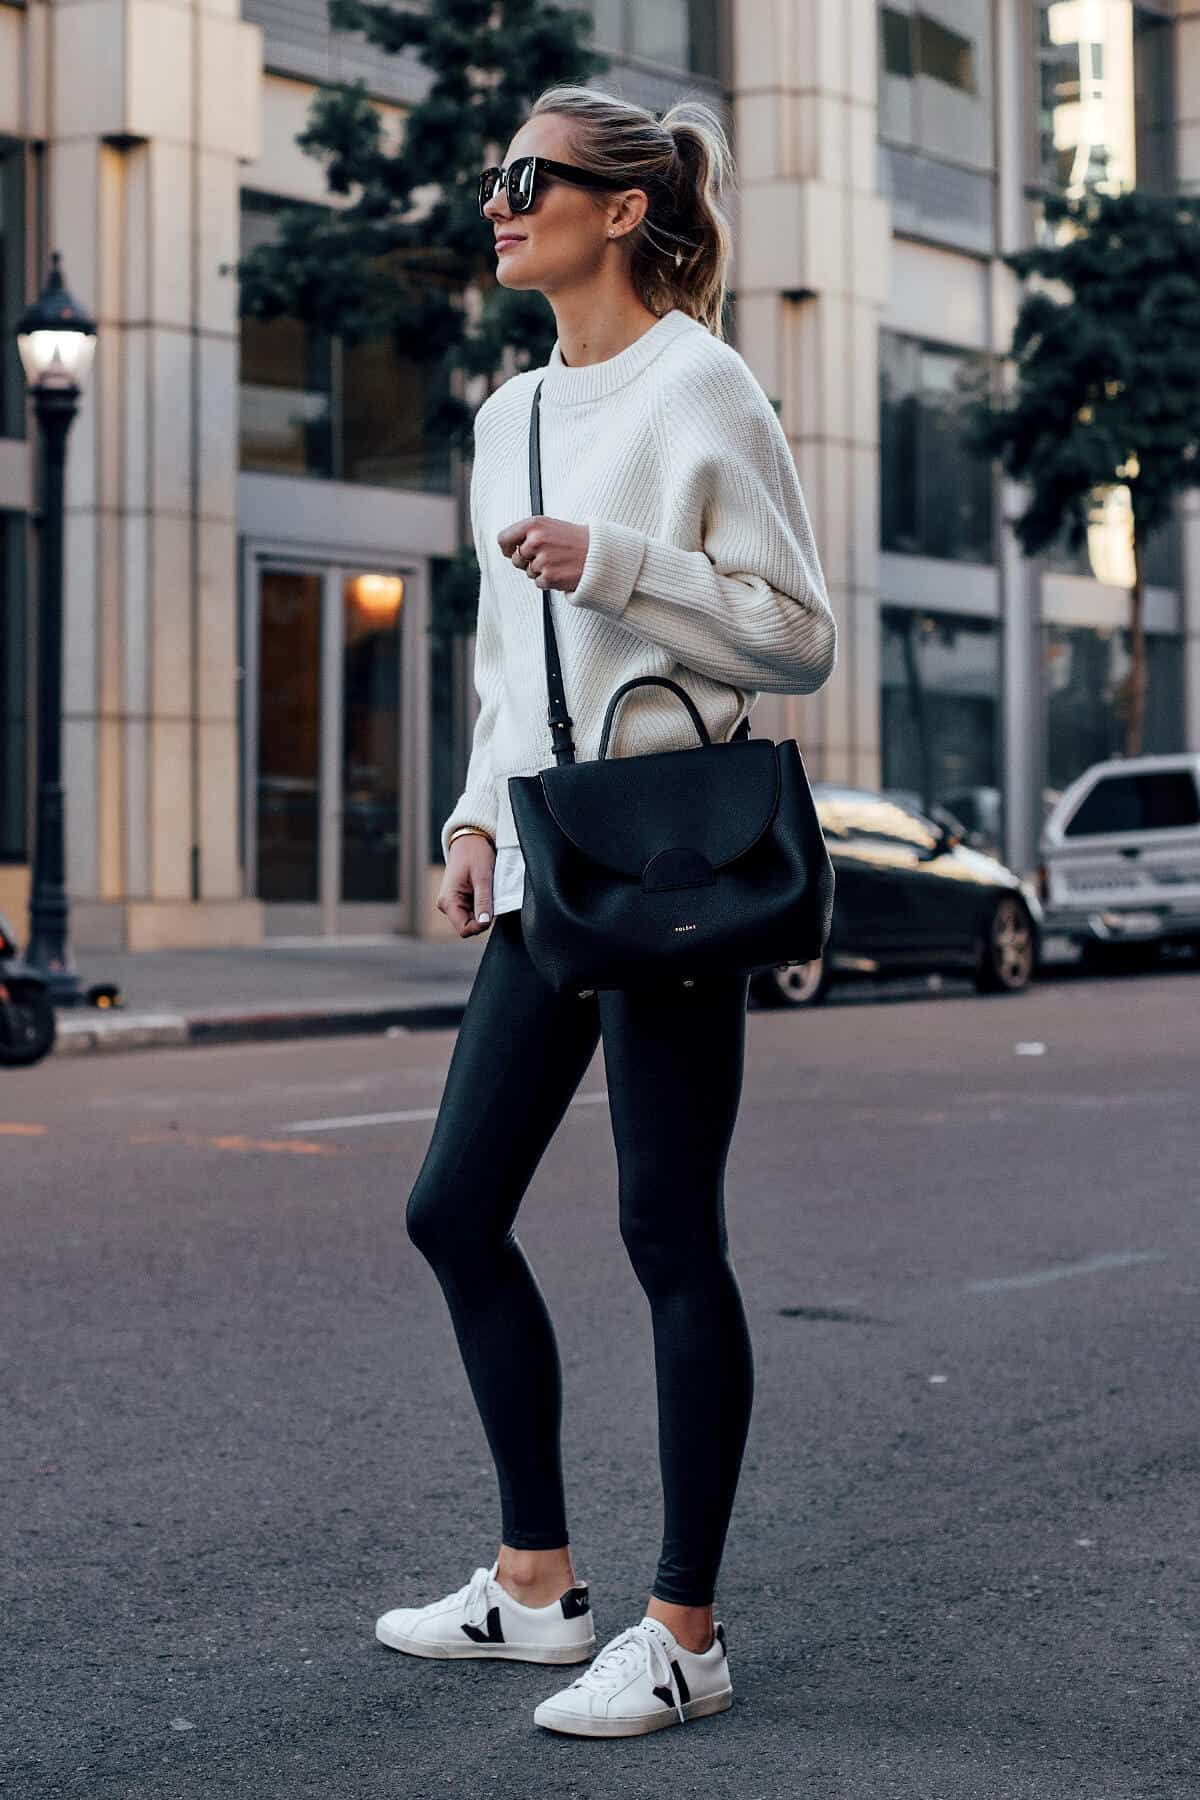 Colour ideas leather leggings outfit black and white, artificial leather